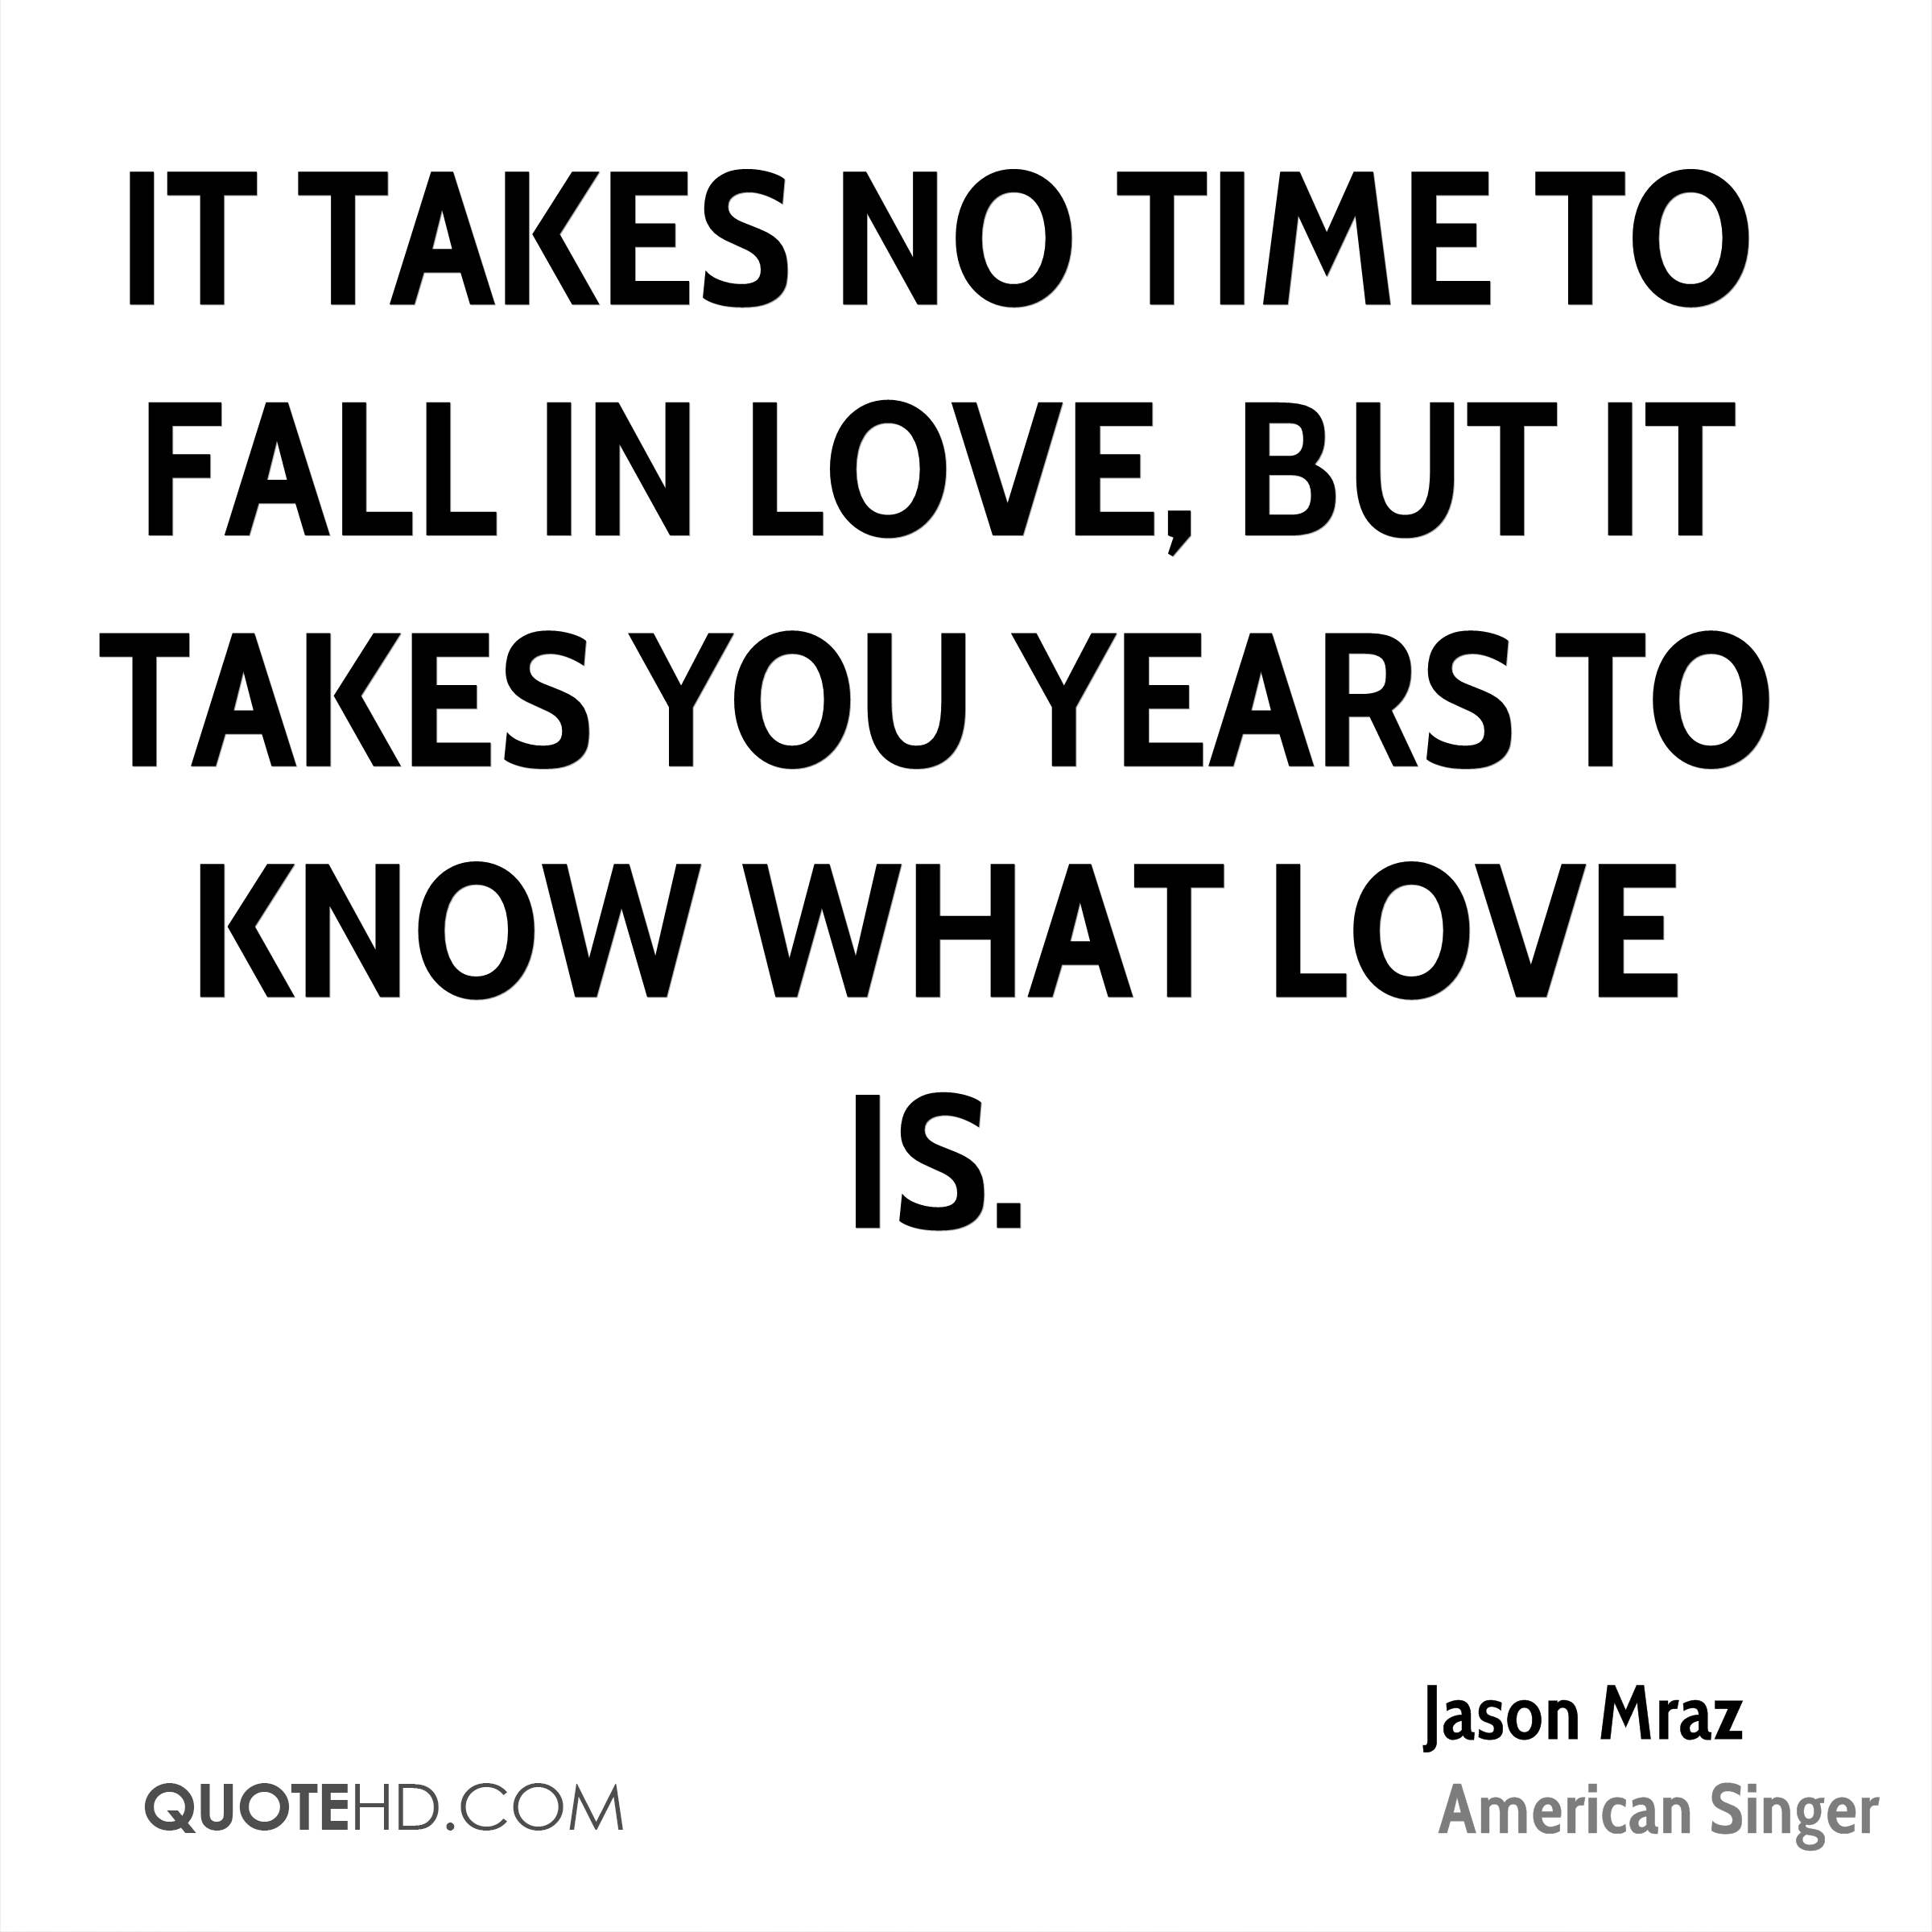 I Love You Jason Quotes : ... no time to fall in love, but it takes you years to know what love is